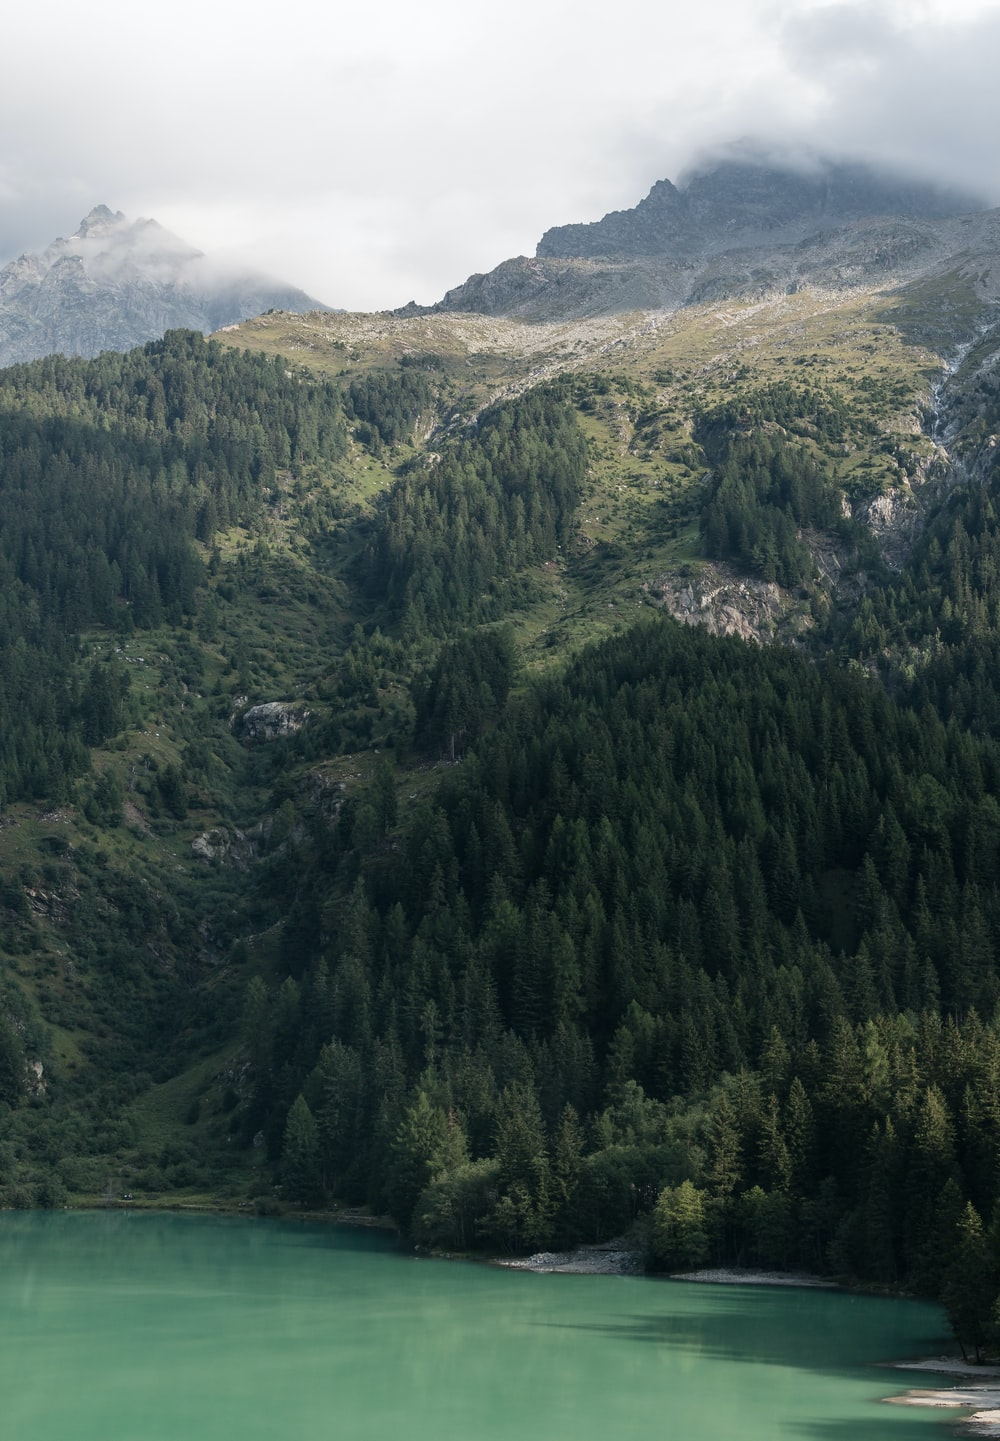 green trees and mountains near green body of water